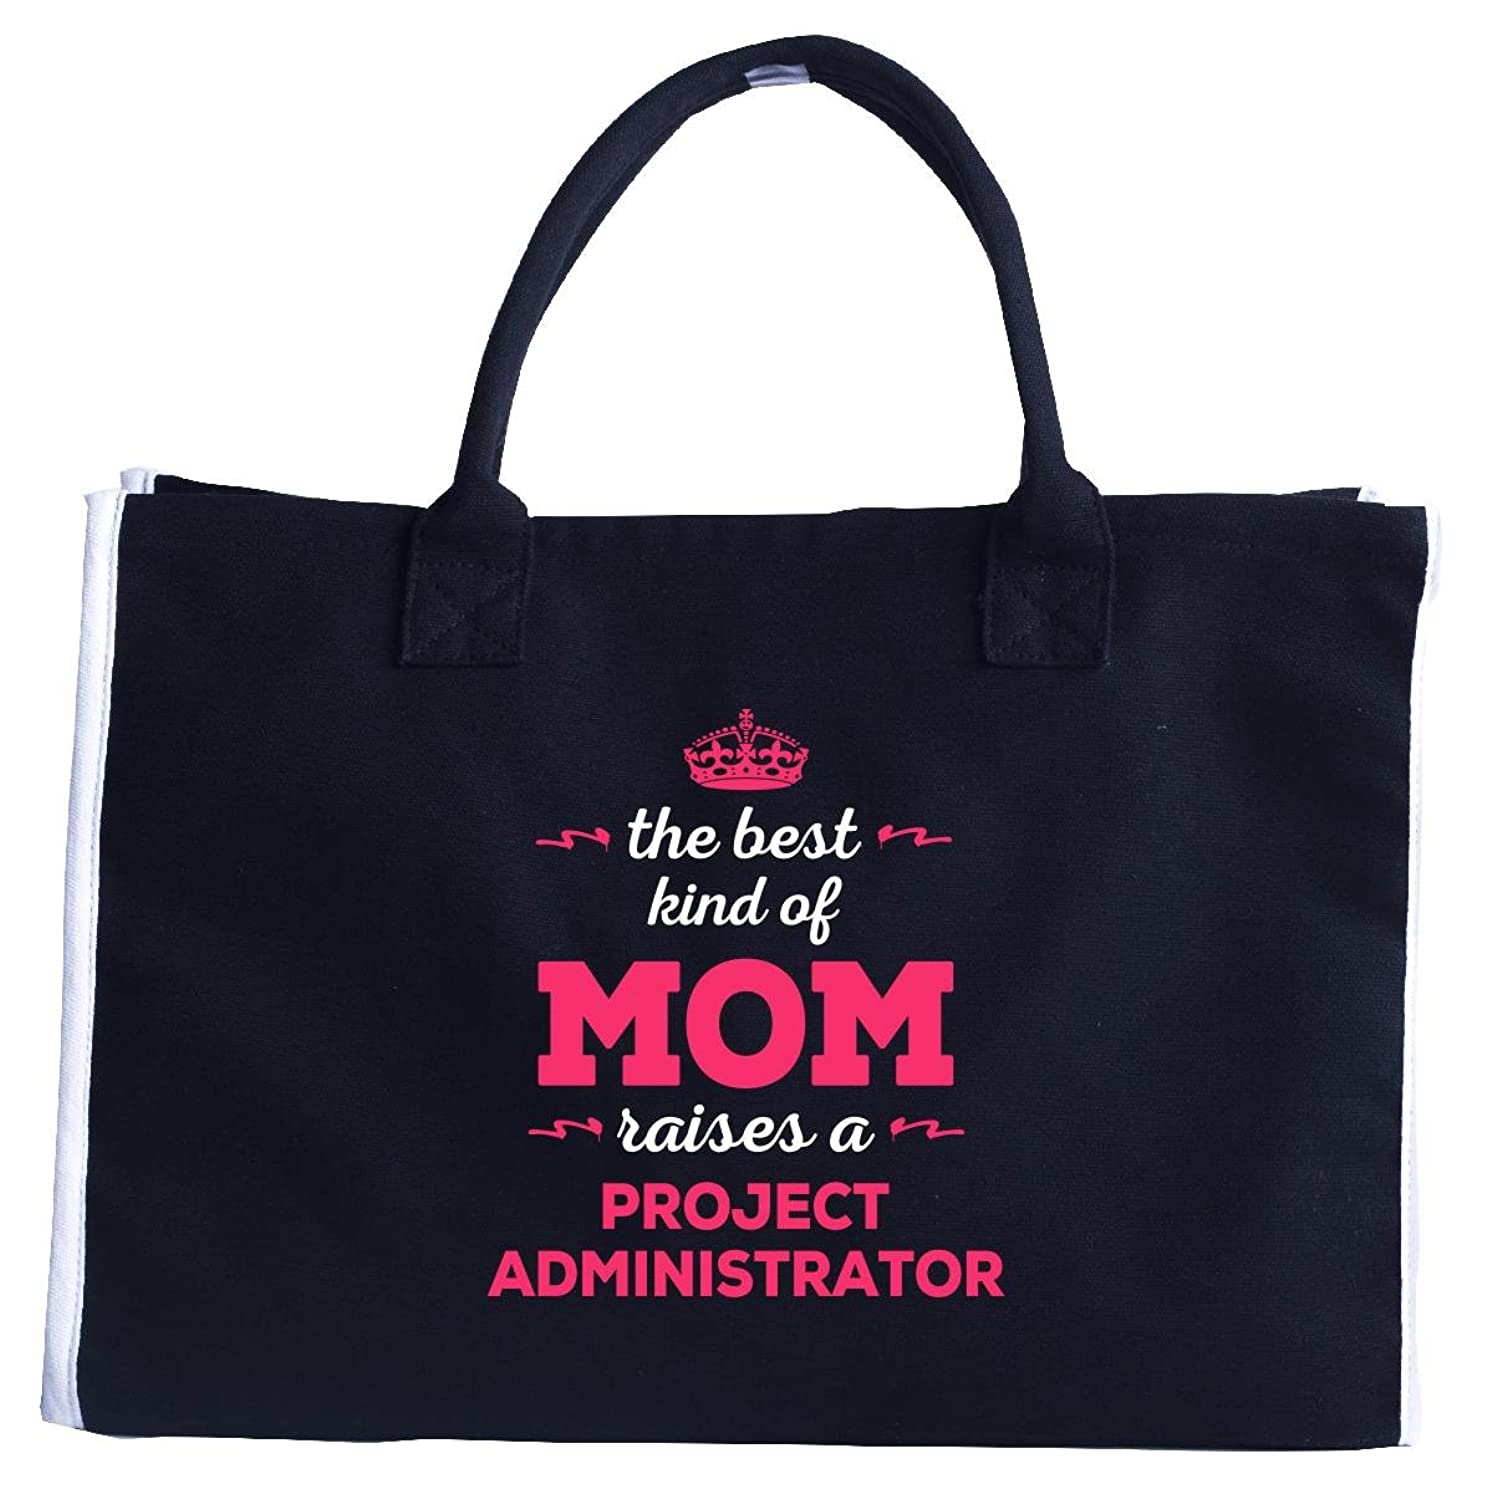 The Best Kind Of Mom Raises A Project Administrator - Fashion Tote Bag